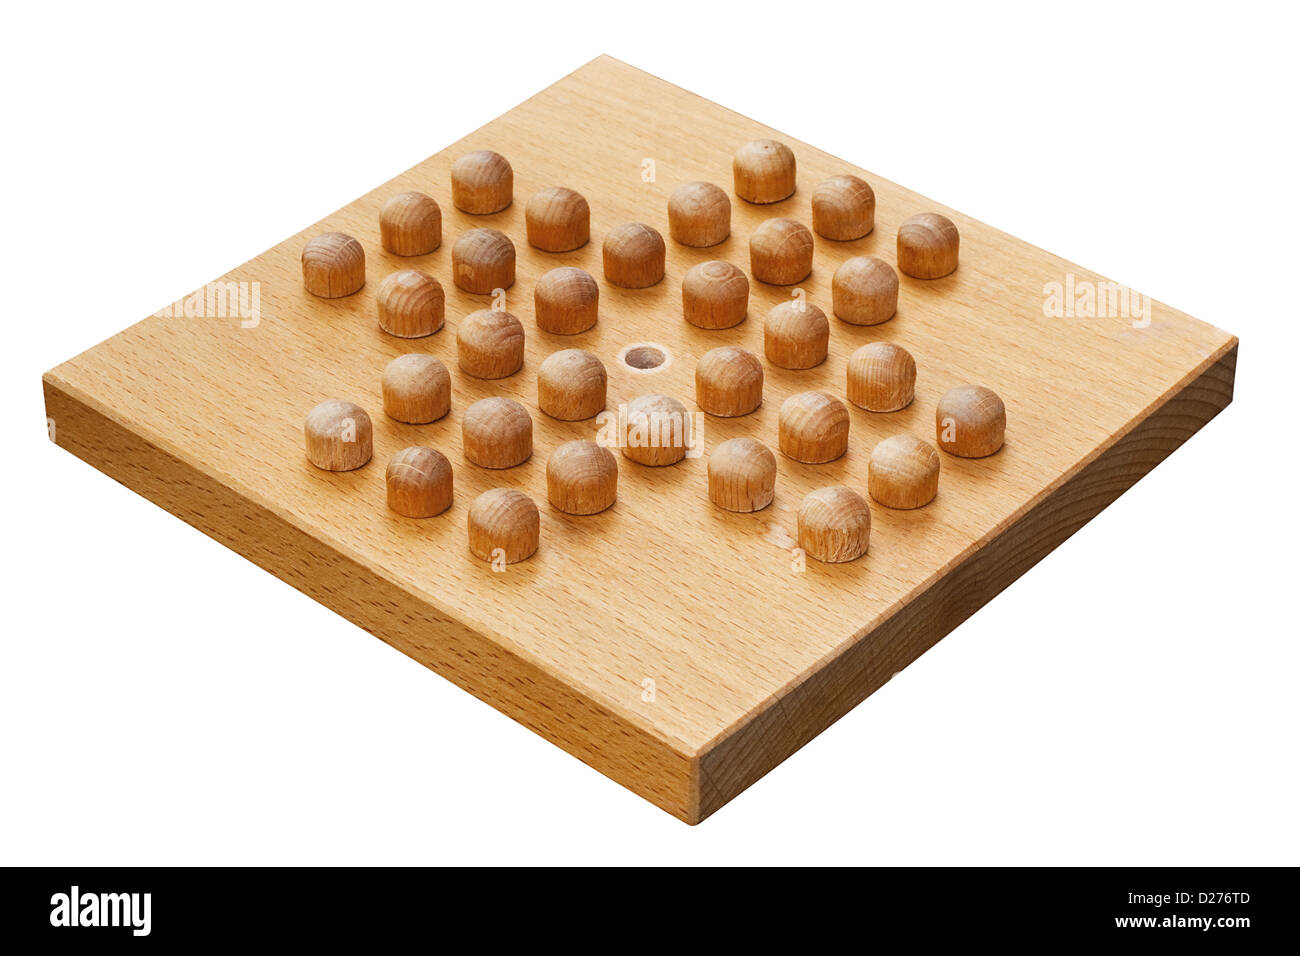 Peg Solitaire Stockfotos & Peg Solitaire Bilder - Alamy